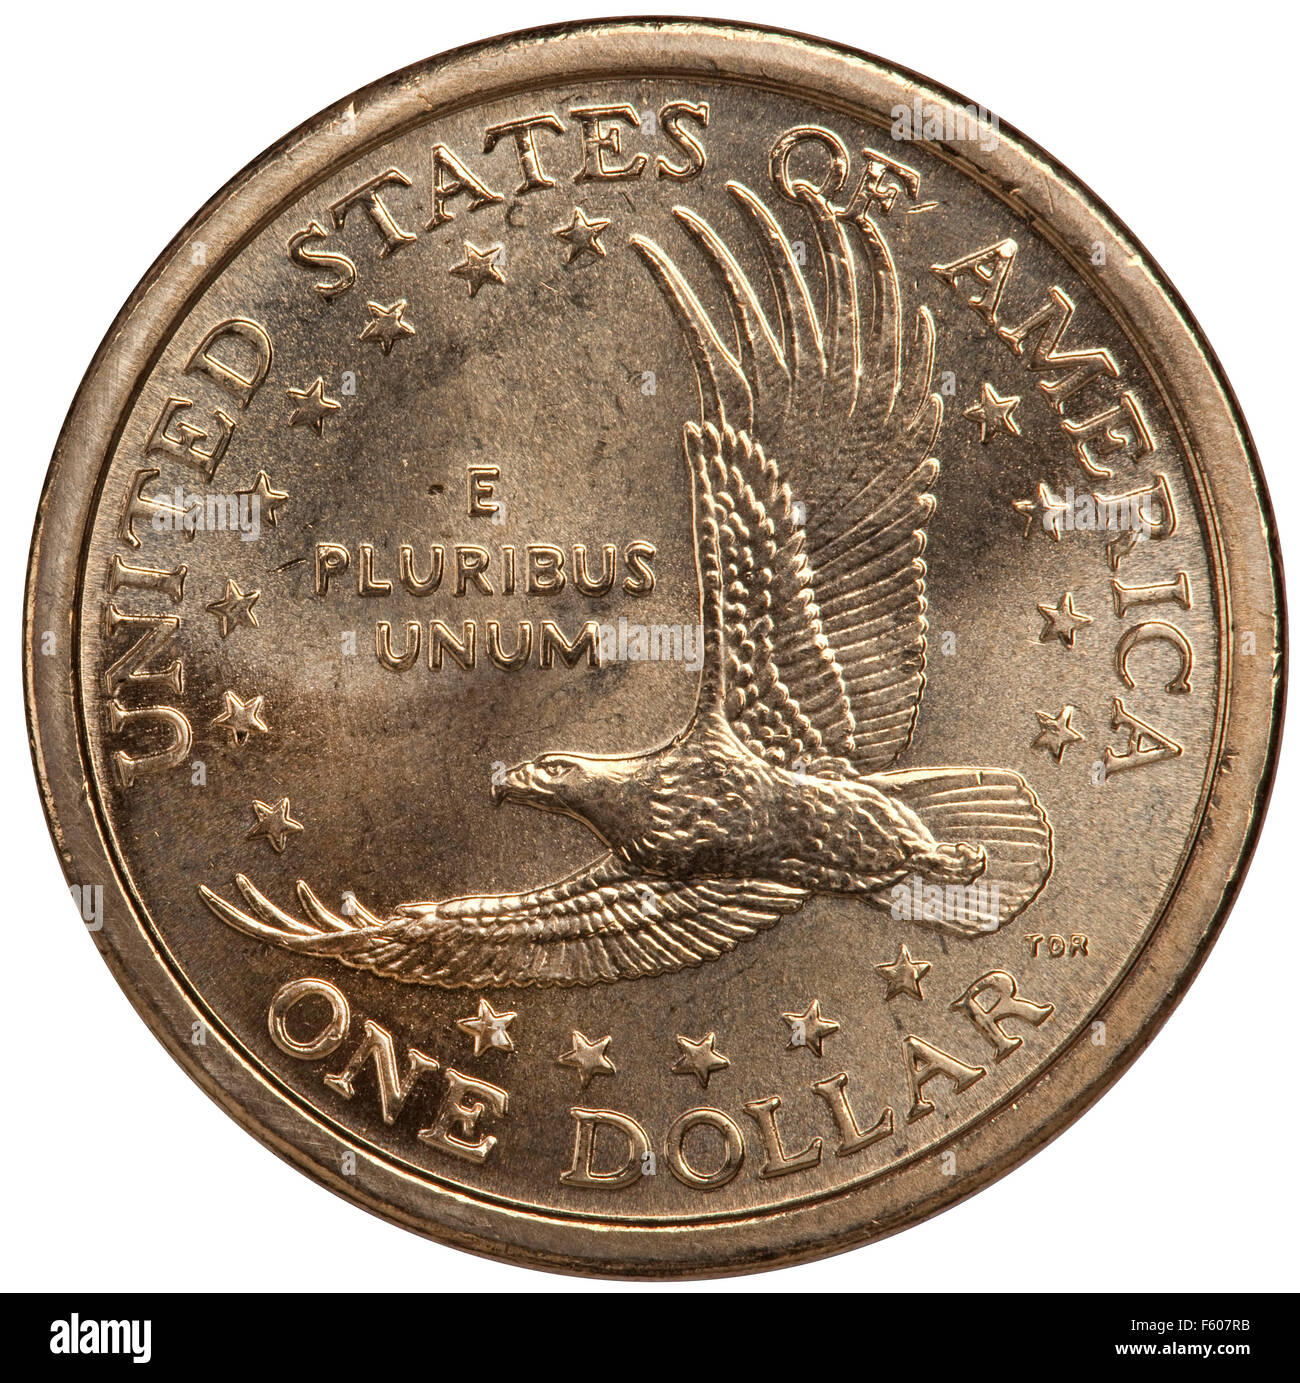 The reverse side of the United States Sacagawea dollar coin 2000-2008 - Stock Image